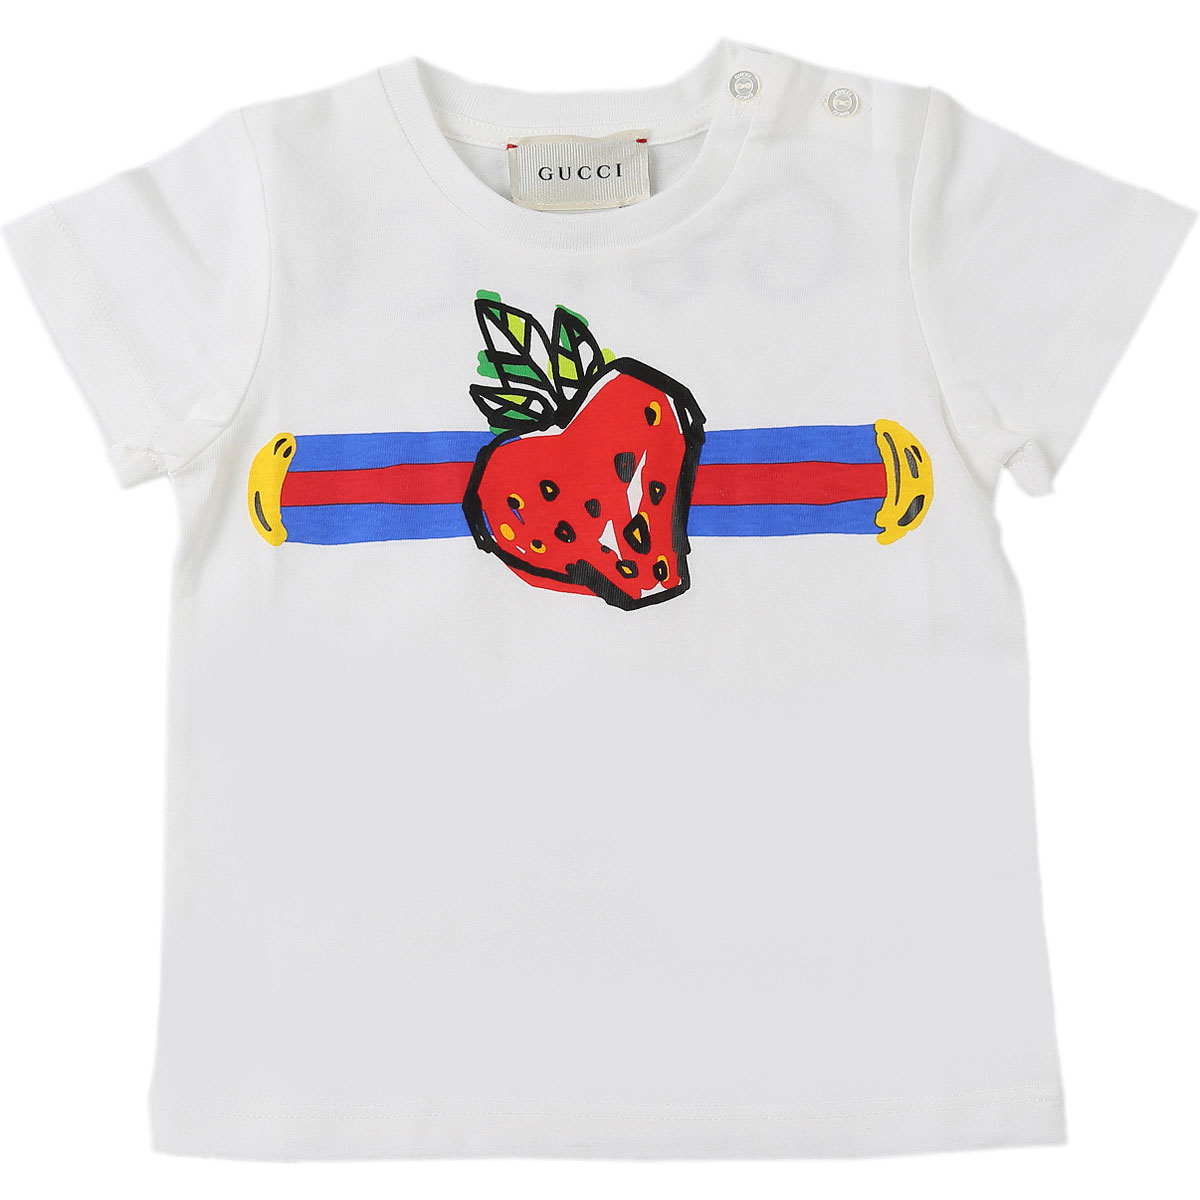 Gucci Baby T-Shirt for Girls On Sale, White, Cotton, 2019, 12M 18M 3Y 6M 9M